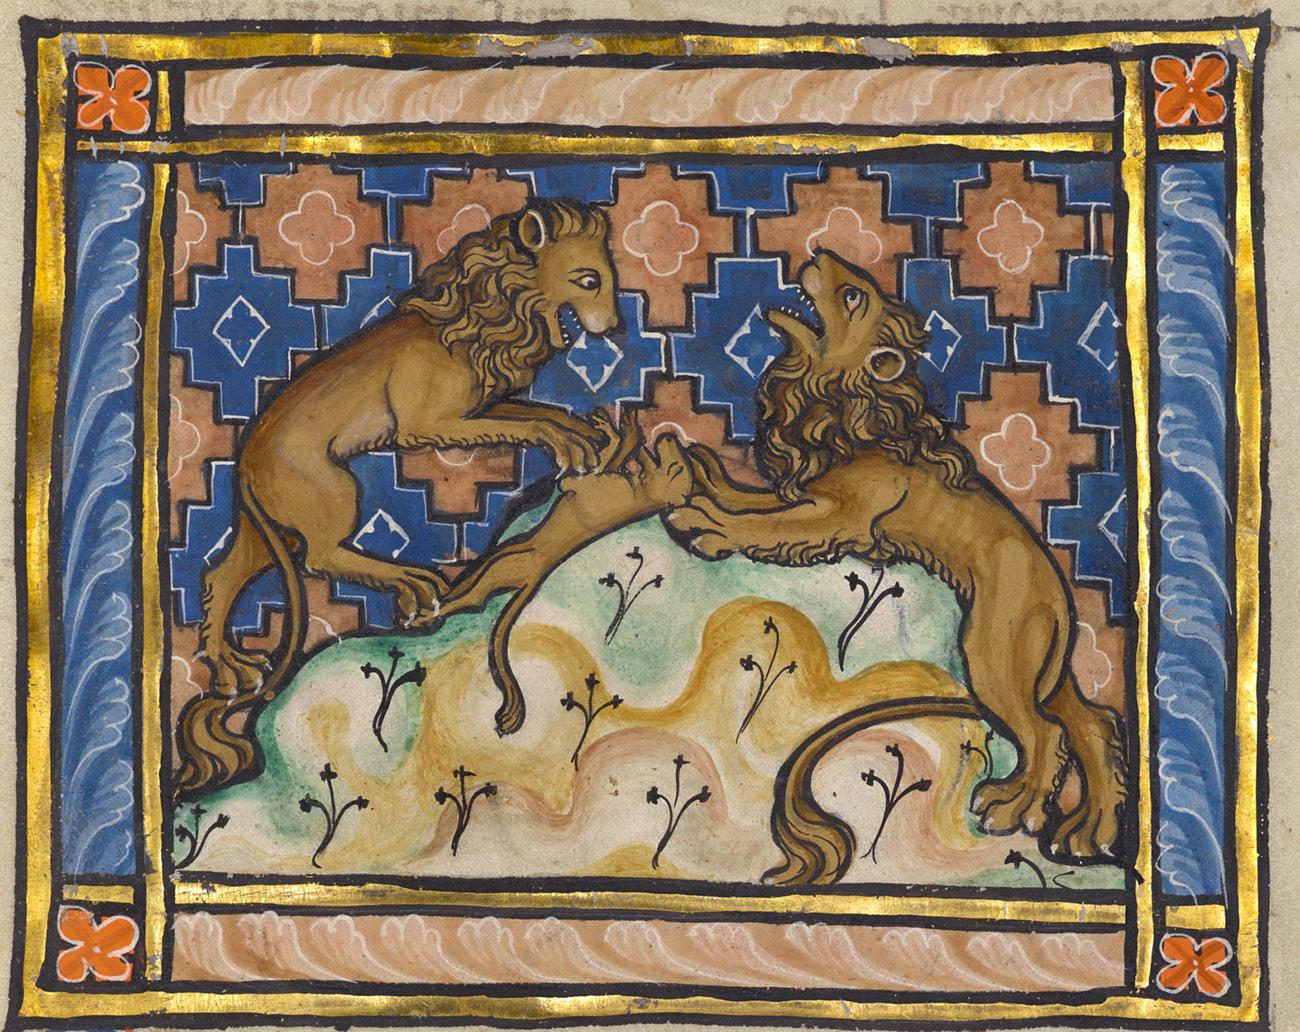 Illustrated manuscript of two maned lions with a dead cub on a rock, bordered with gold leaf.